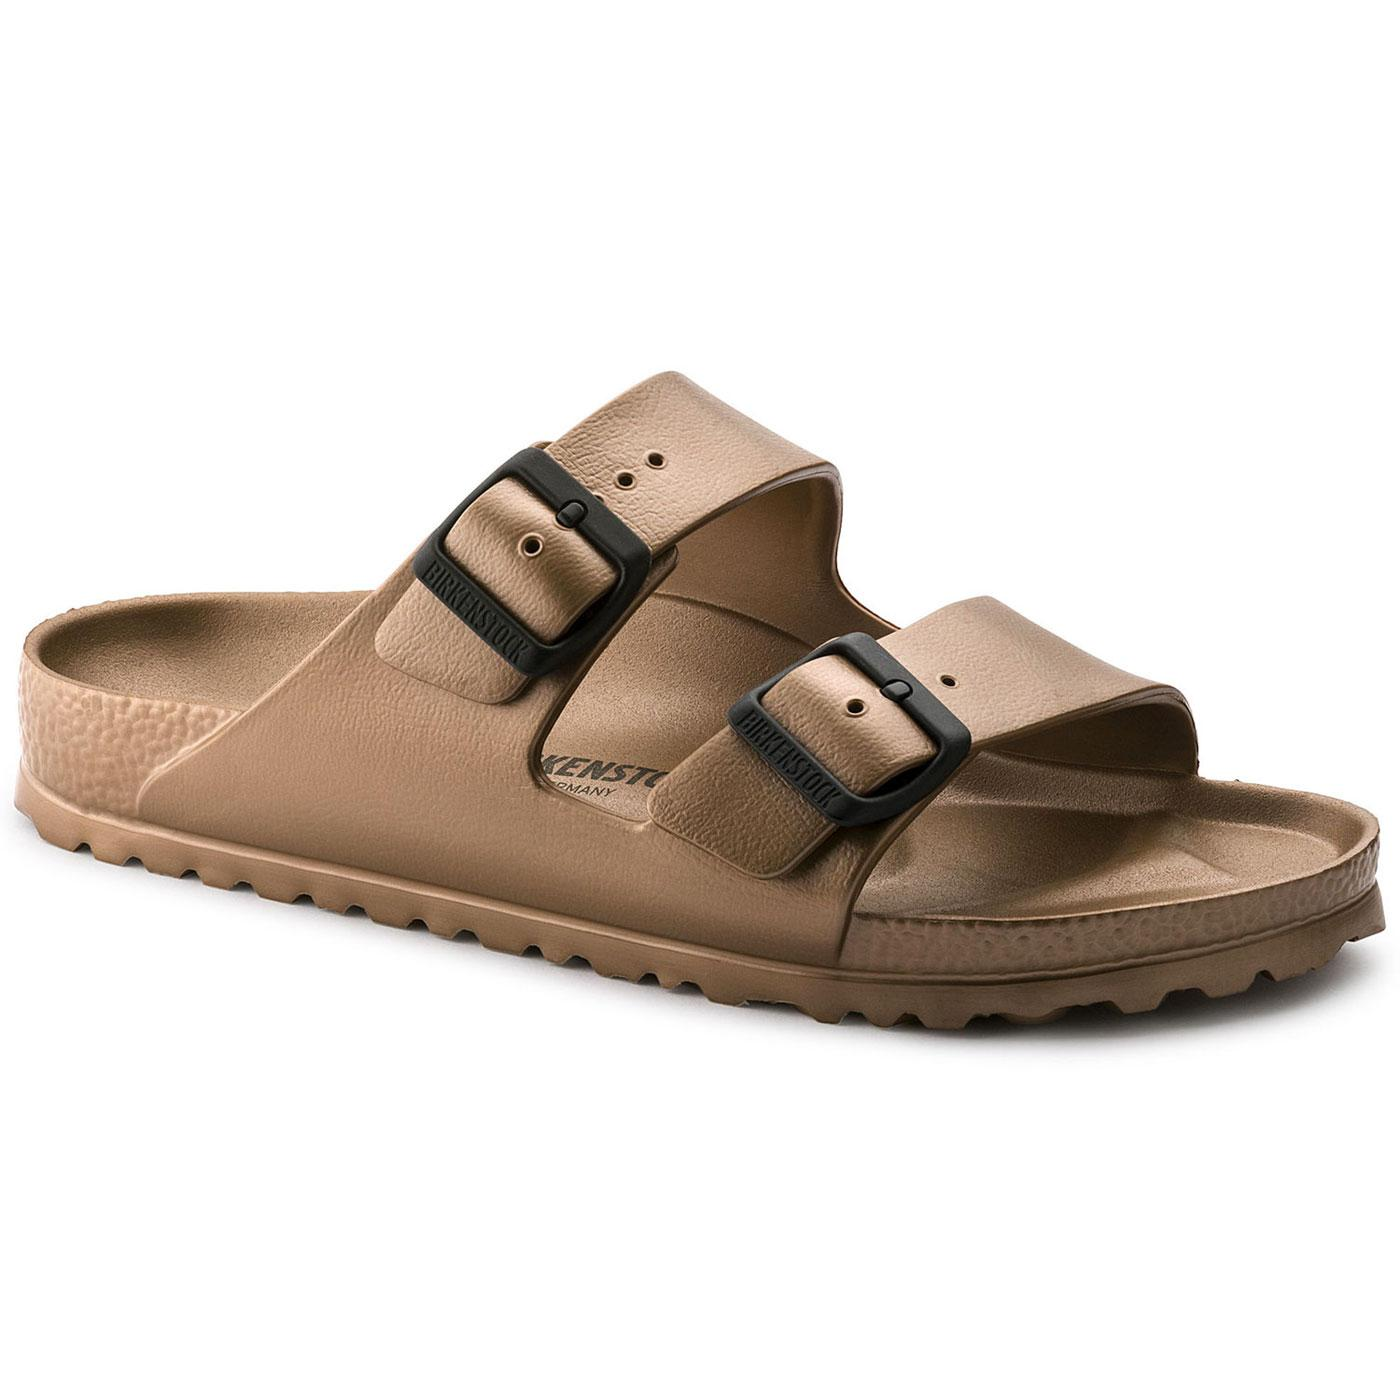 Arizona EVA BIRKENSTOCK Retro Waterproof Sandals C